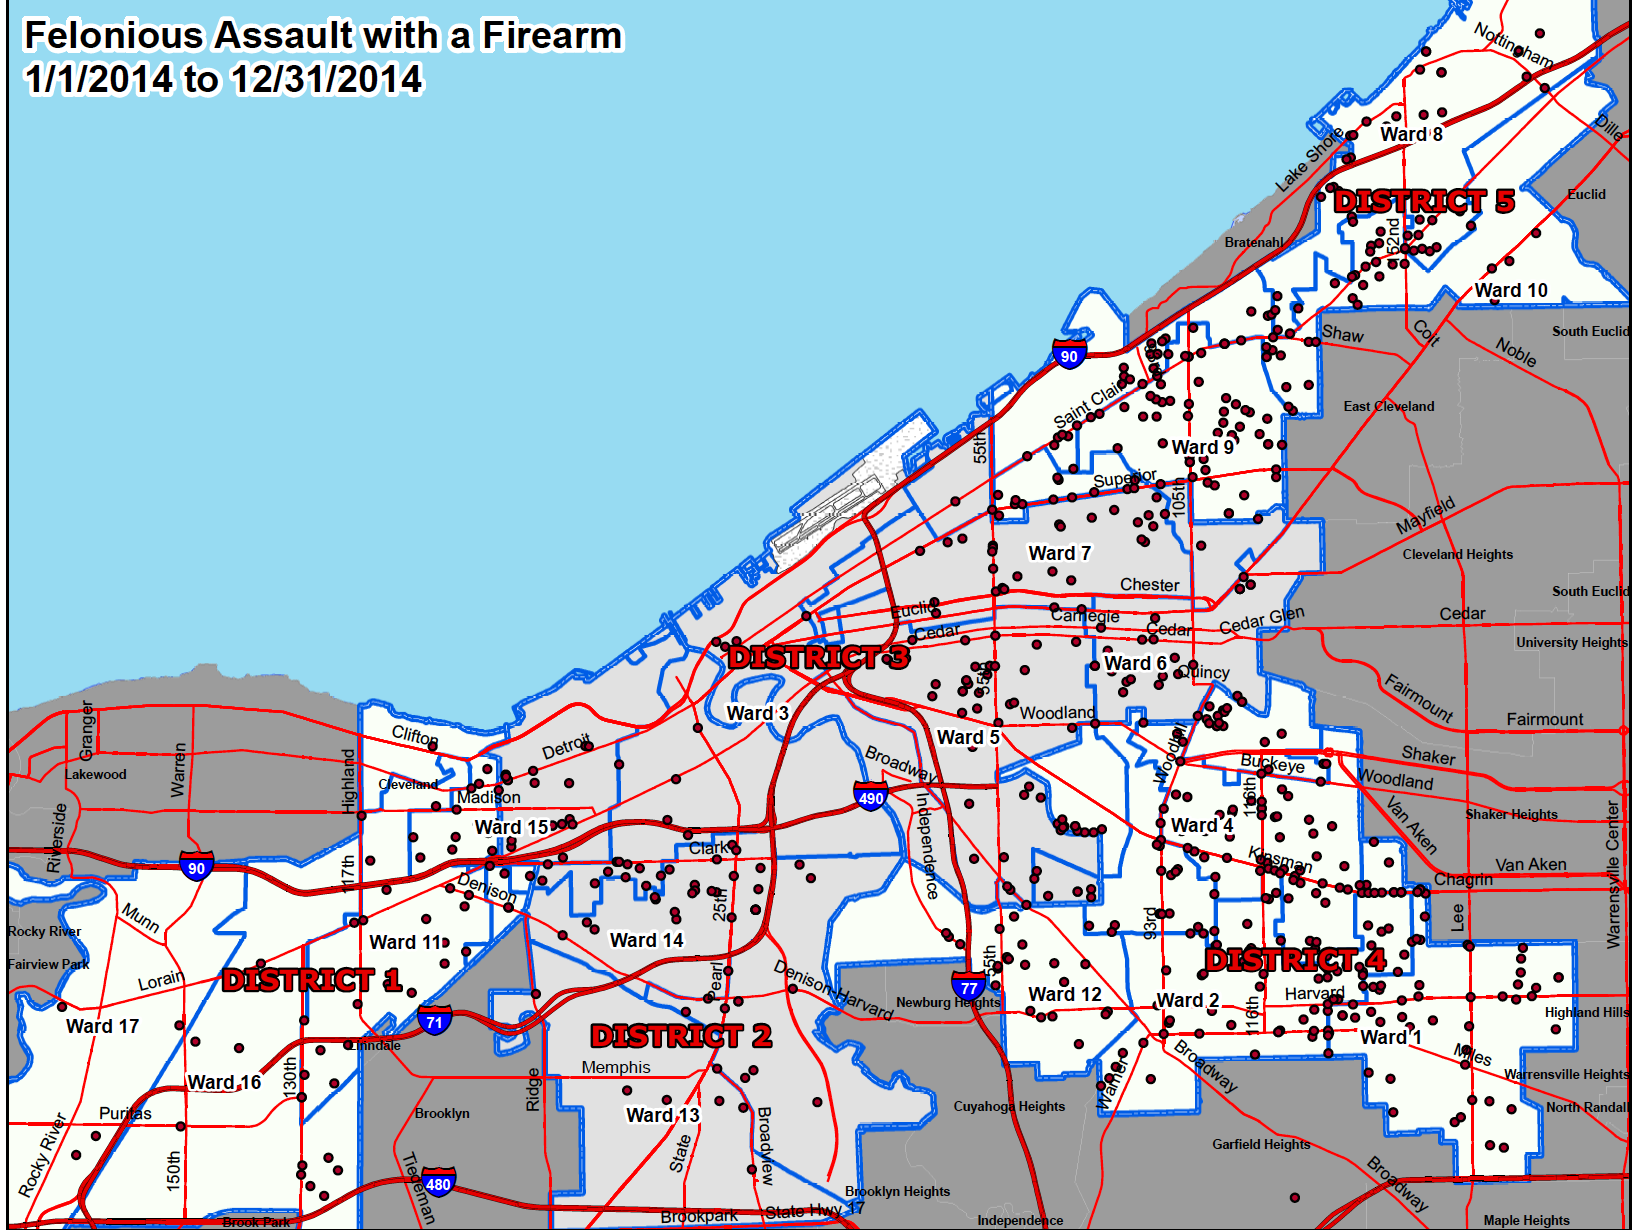 Click here to view a full PDF of Cleveland felonious assaults with a firearm in 2014.